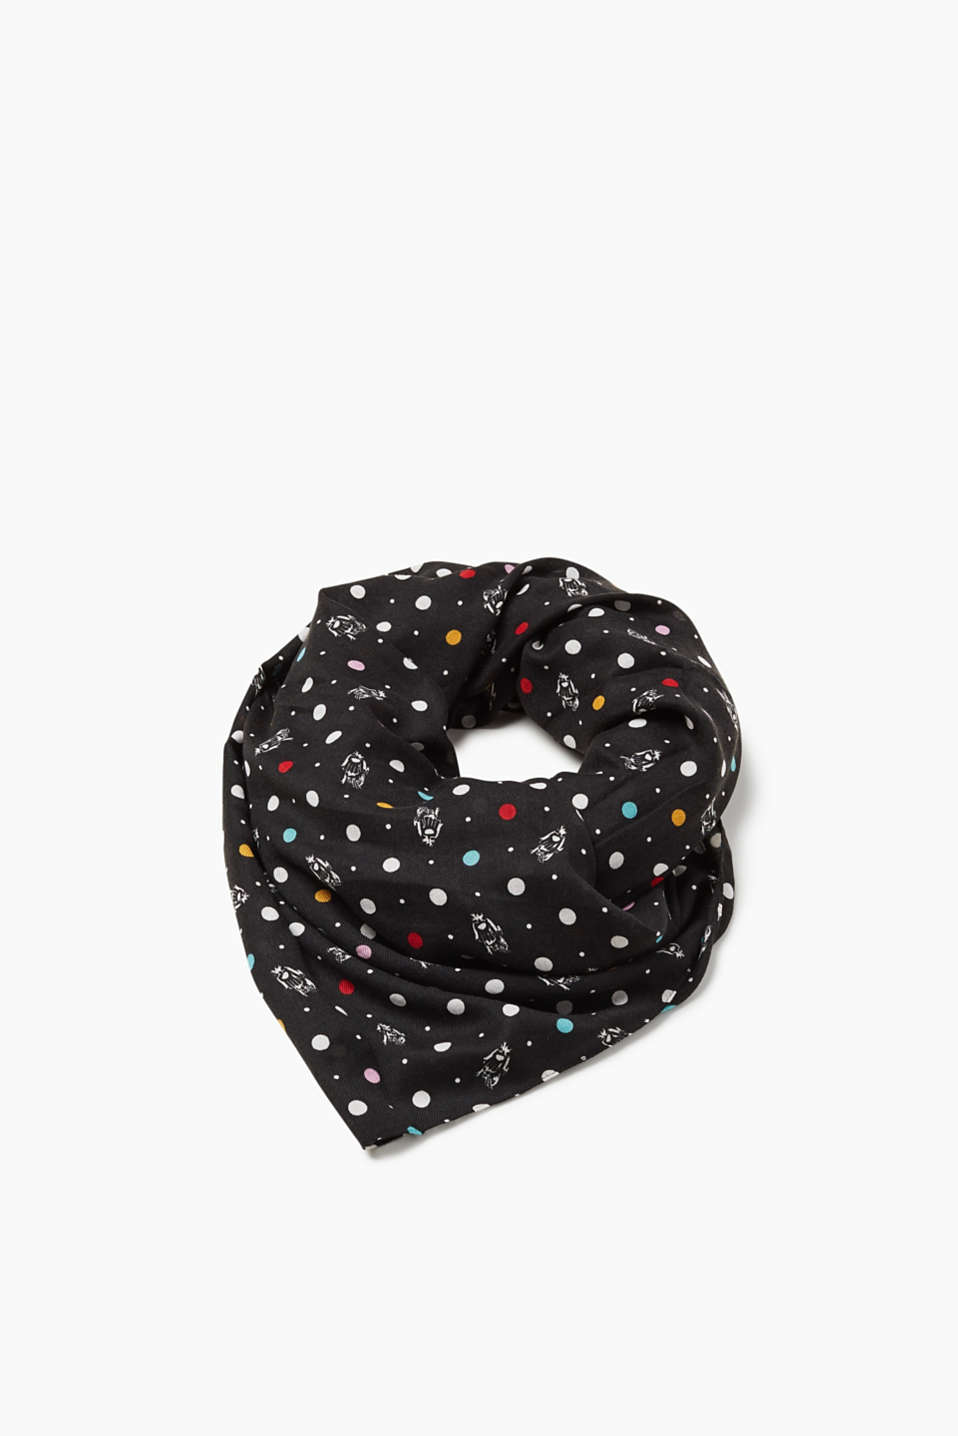 Indoors or outdoors - the colourful polka dot pattern makes this scarf an awesome accessory for highlighting your look.